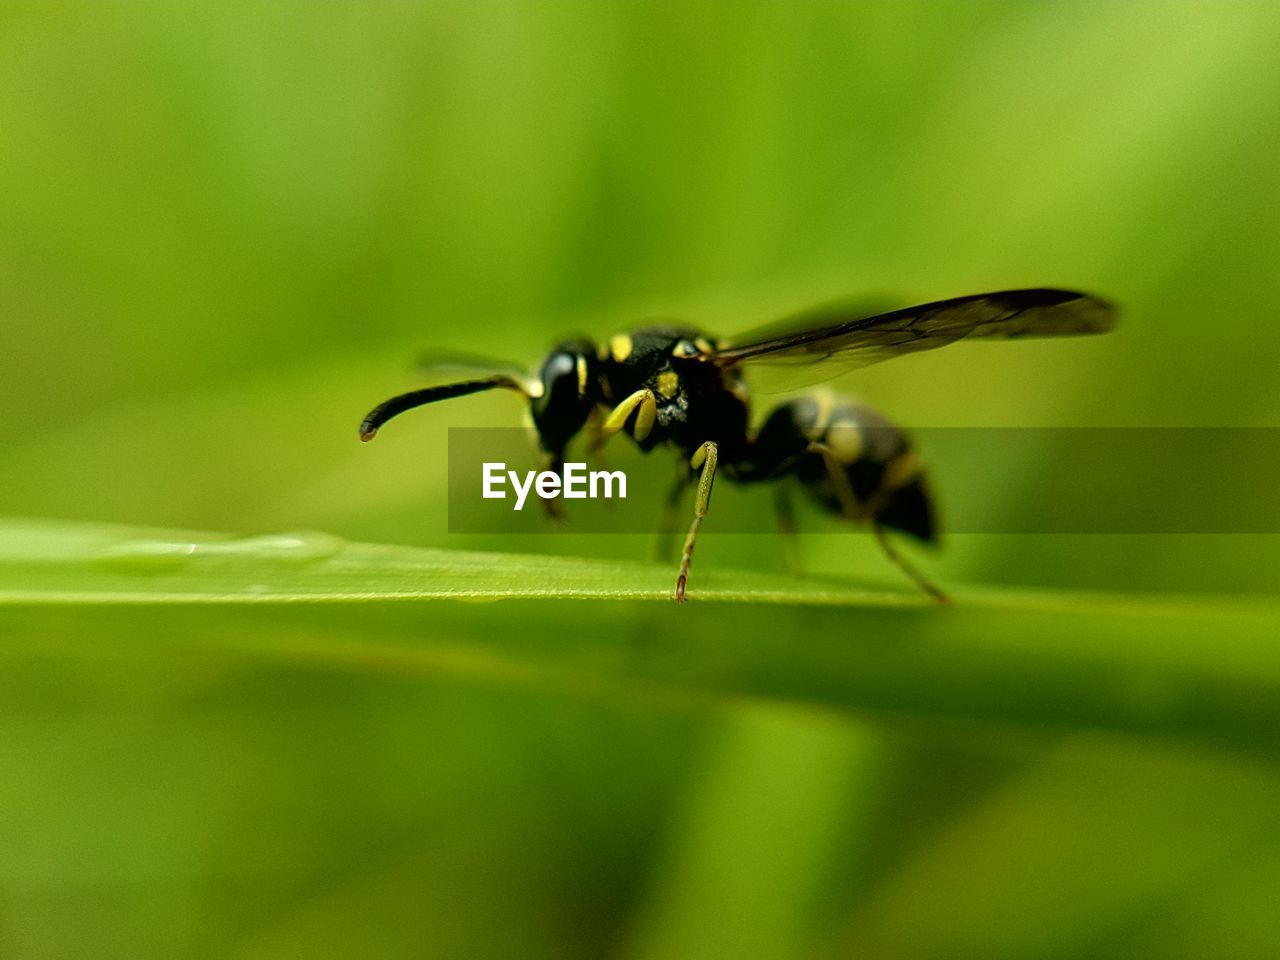 green color, insect, animals in the wild, animal themes, nature, no people, selective focus, close-up, leaf, one animal, plant, day, outdoors, growth, freshness